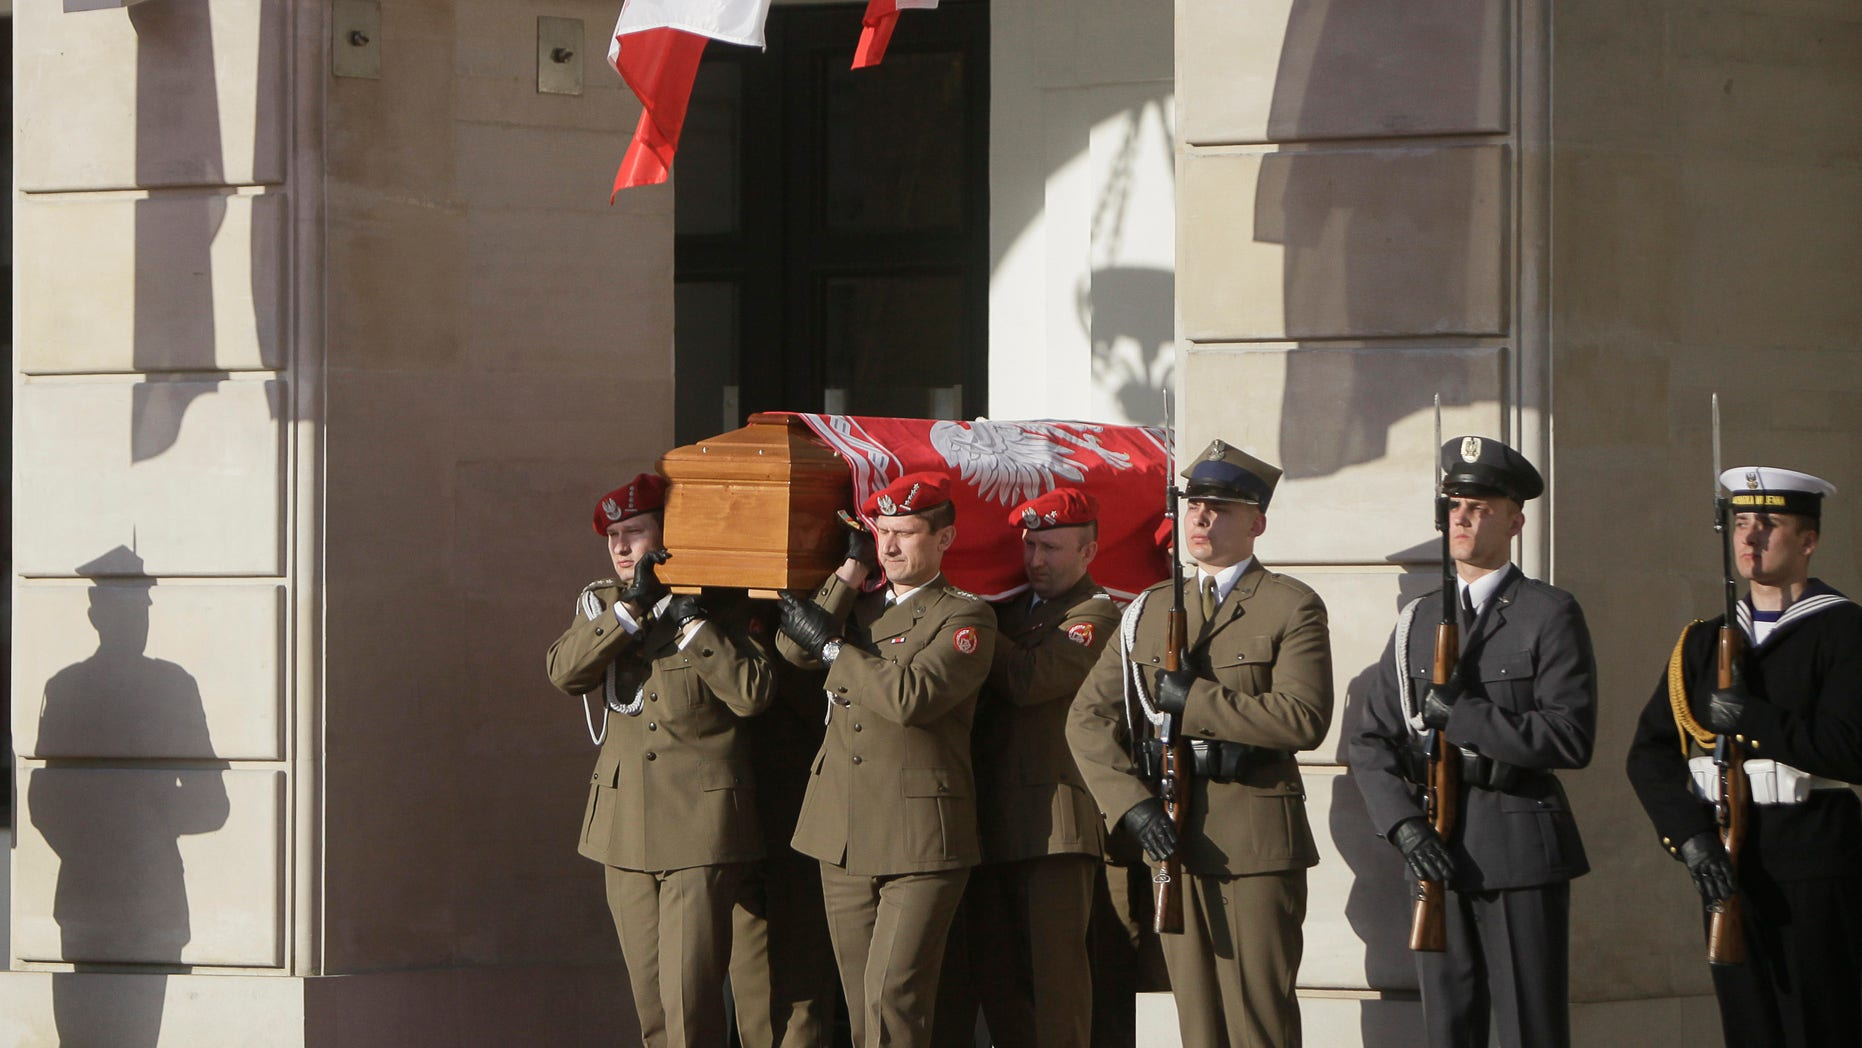 April 17: Honor guards carry the coffin of late Polish President Lech Kaczynski in front of the President's Palace in Warsaw, Poland. President Lech Kaczynski was killed in a plane crash.